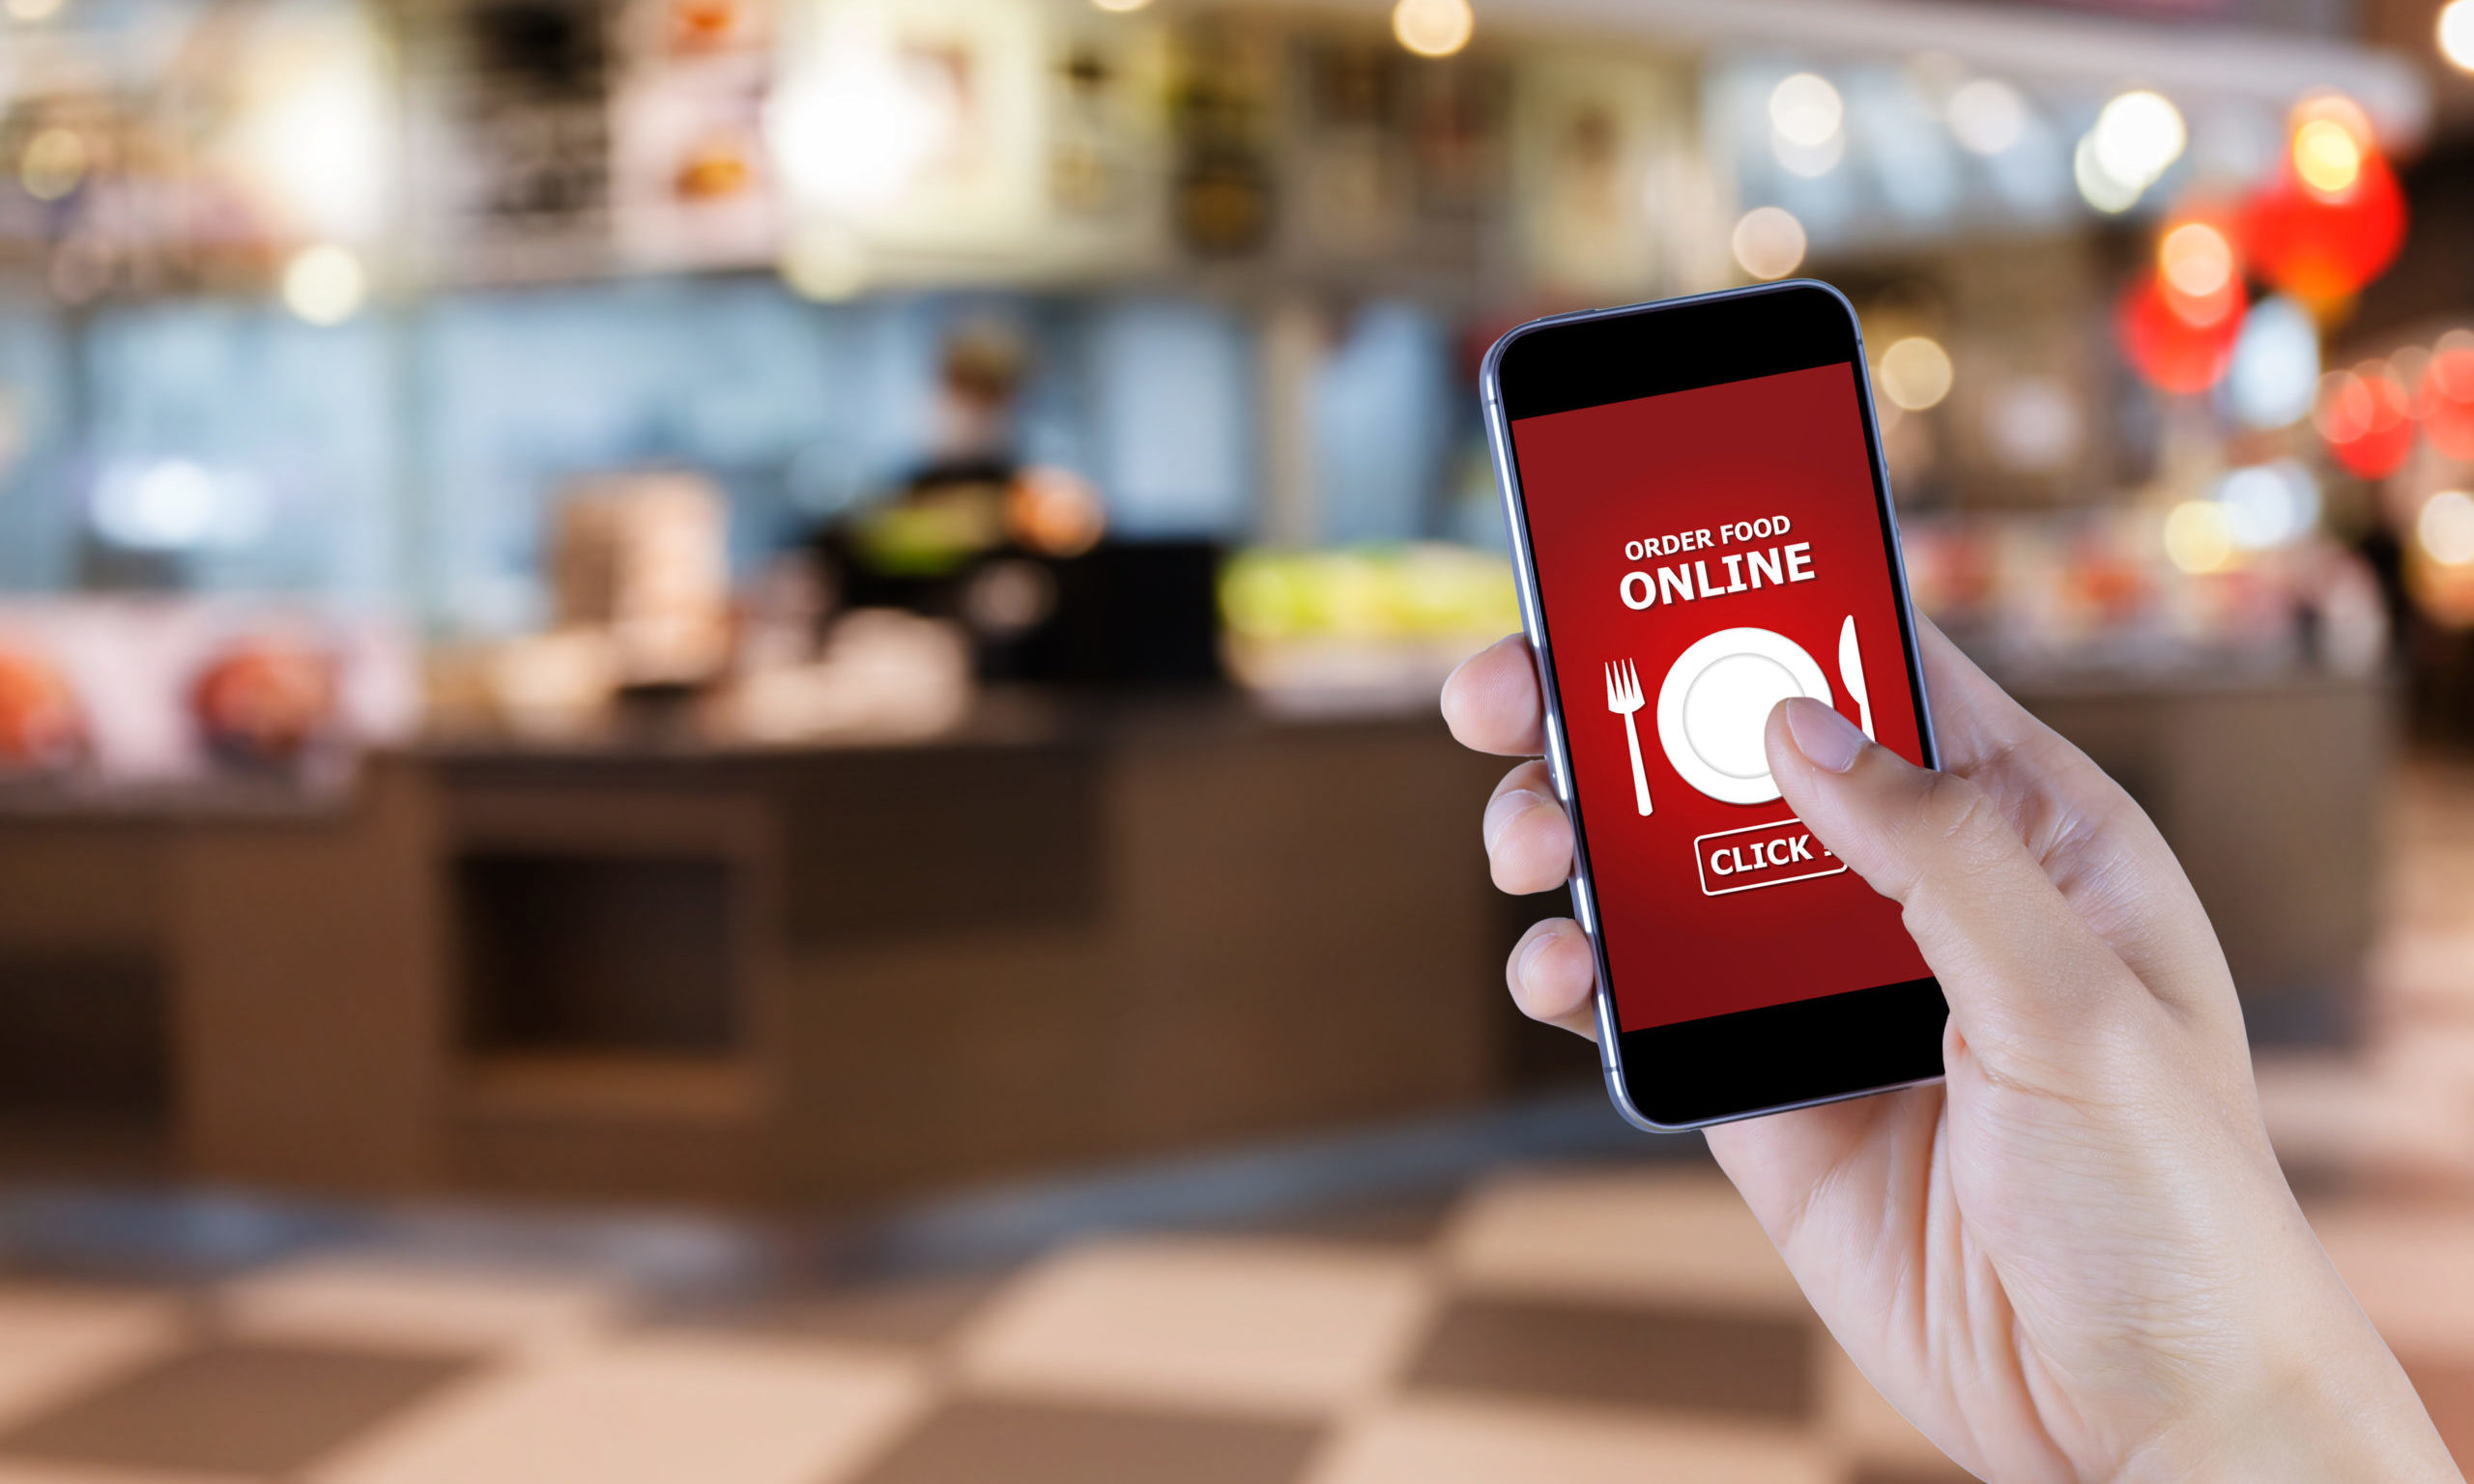 Ordering online is set to become the norm in pubs.